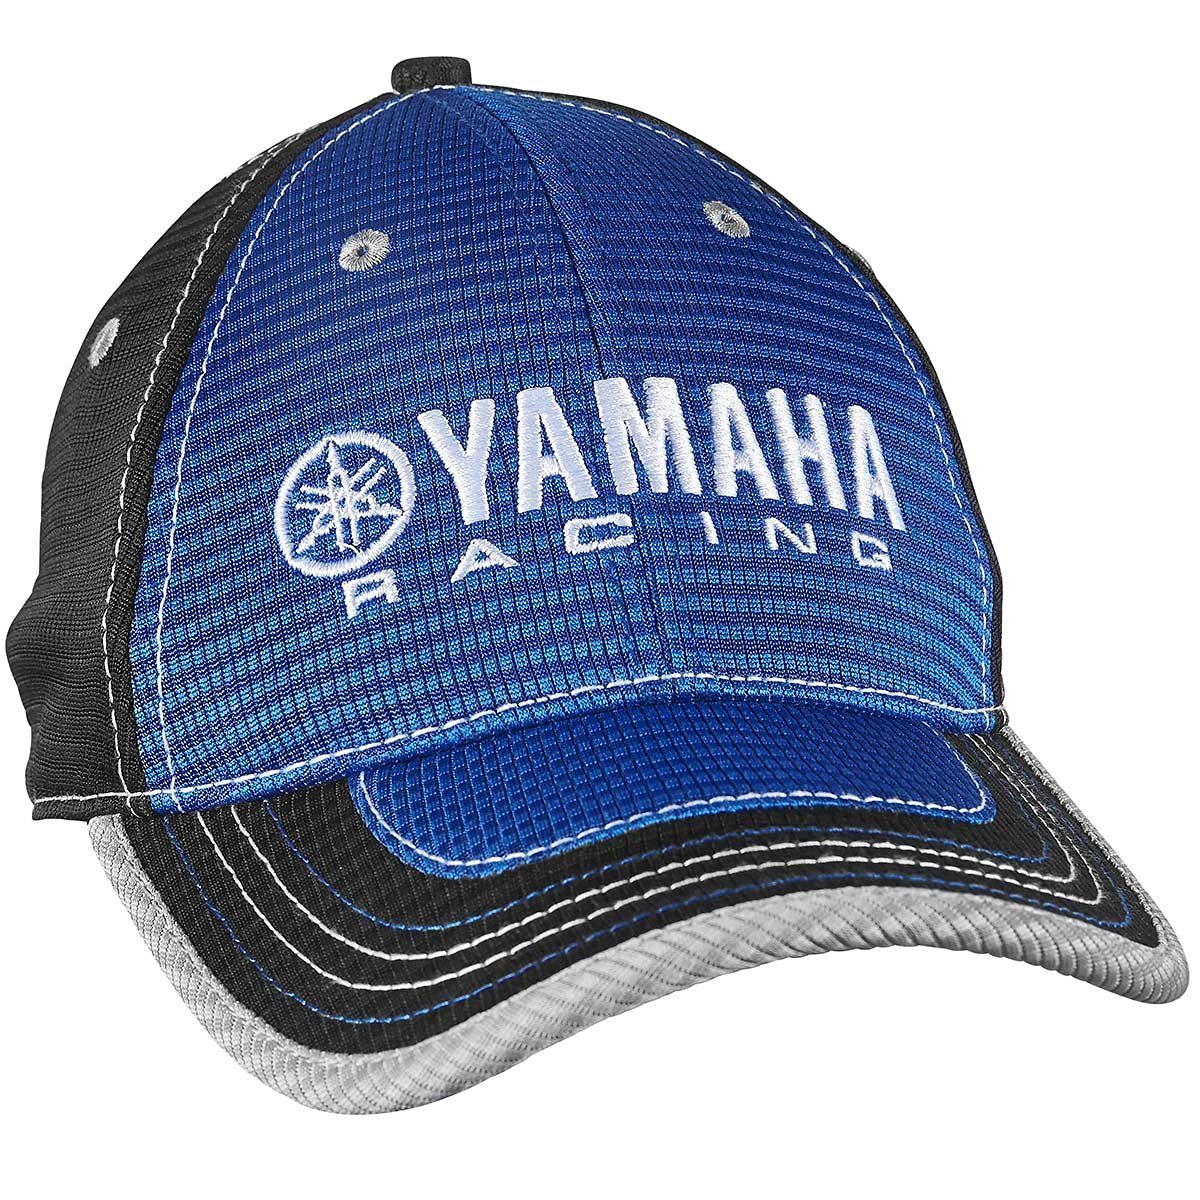 Get Quotations · 2016 YAMAHA RACING HAT BLUE BASEBALL CAP CRP-16HYR-BL-NS eb894c8399eb